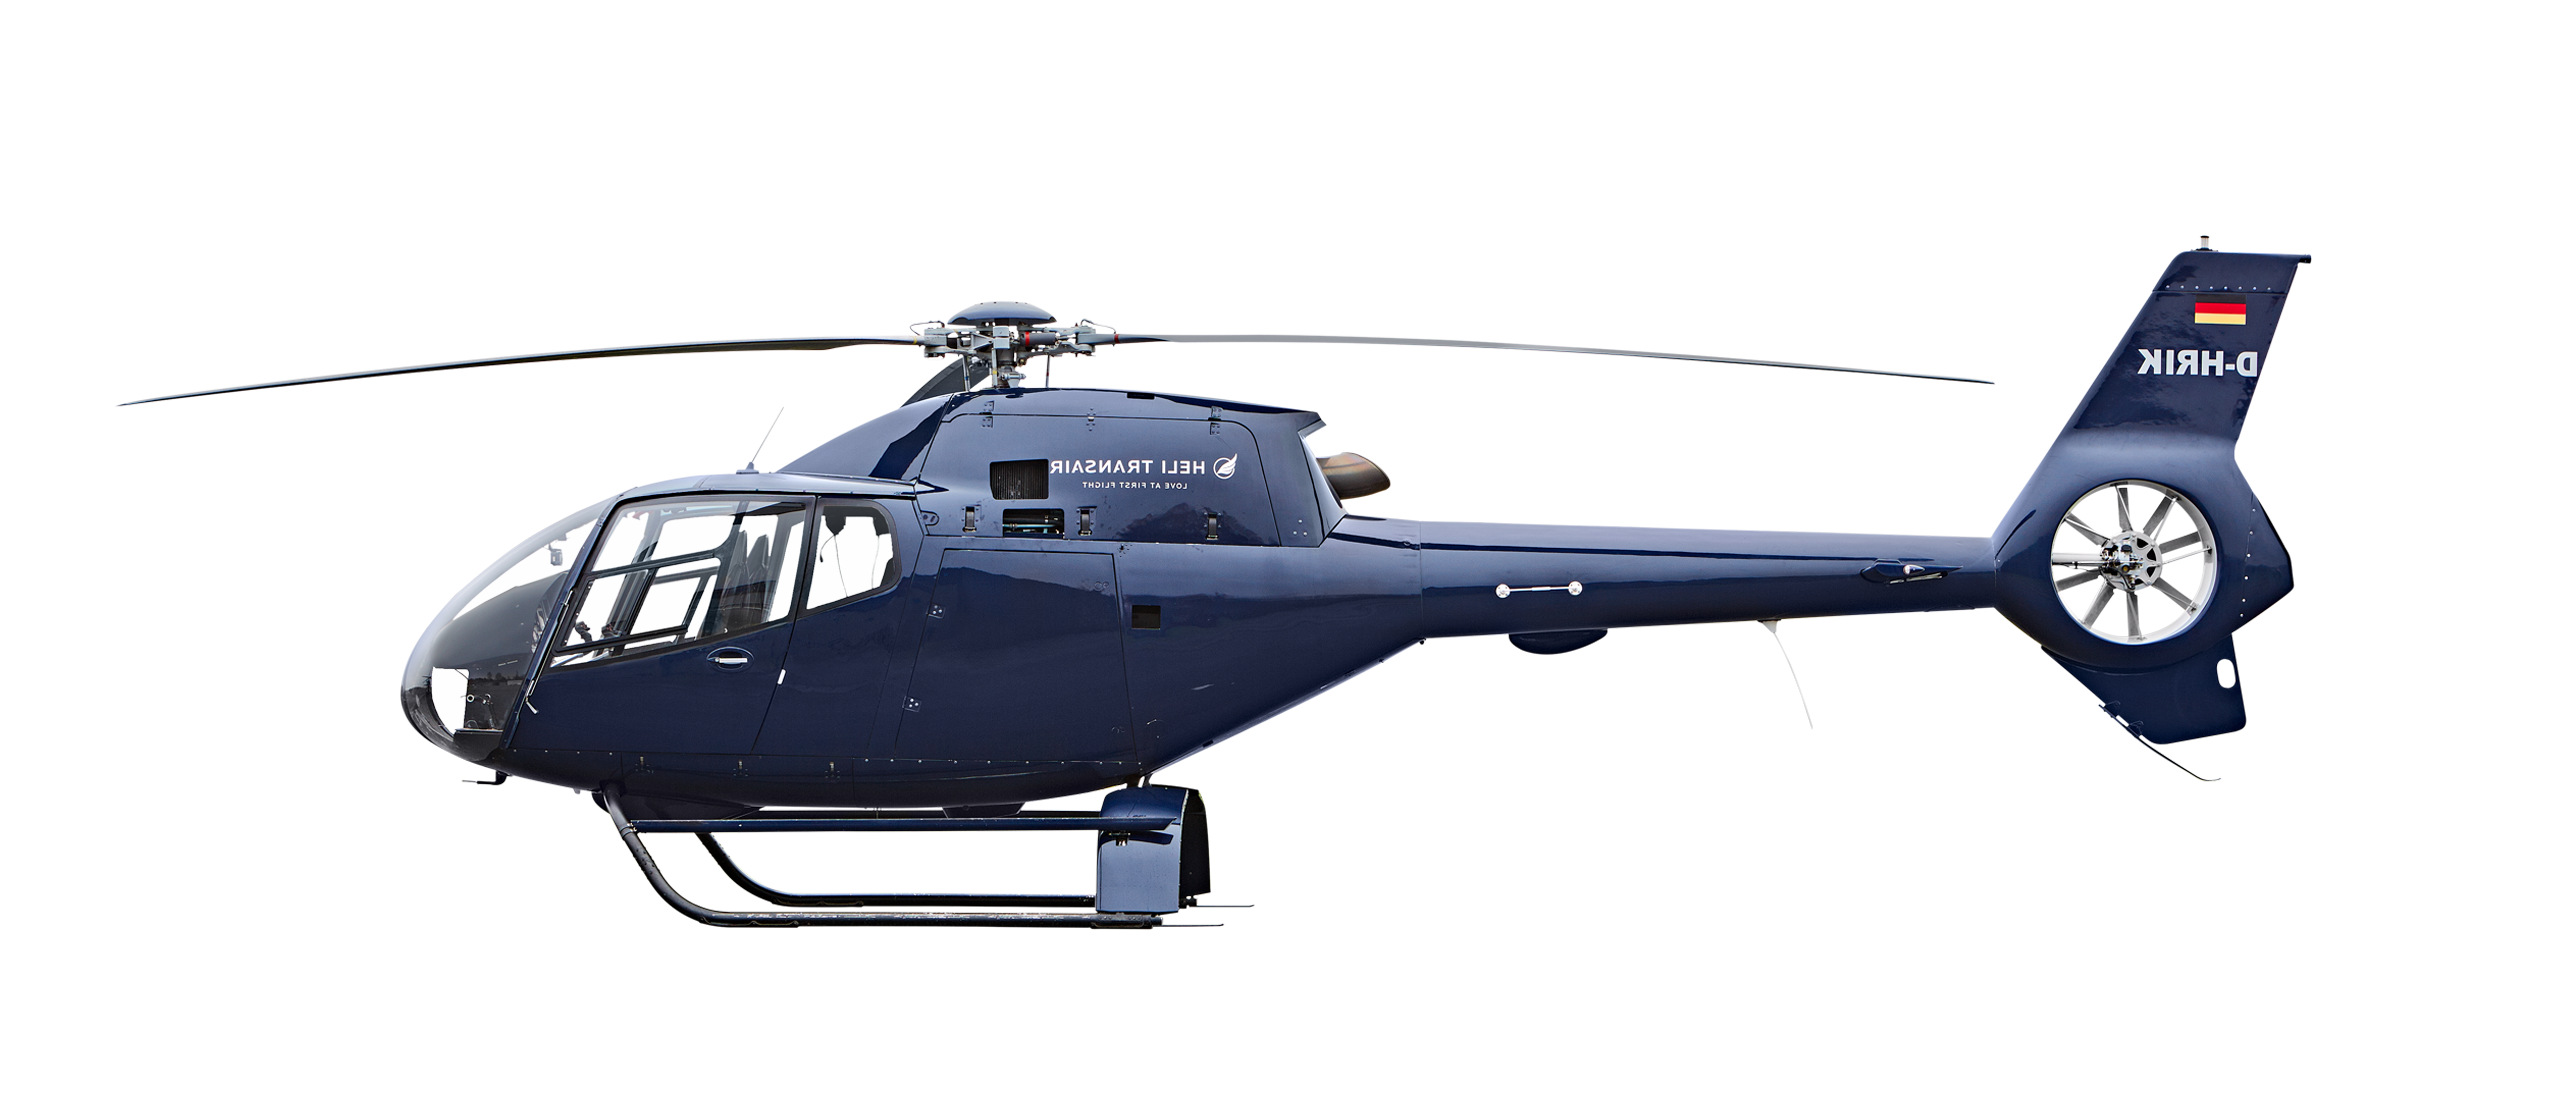 helicopter_PNG80040